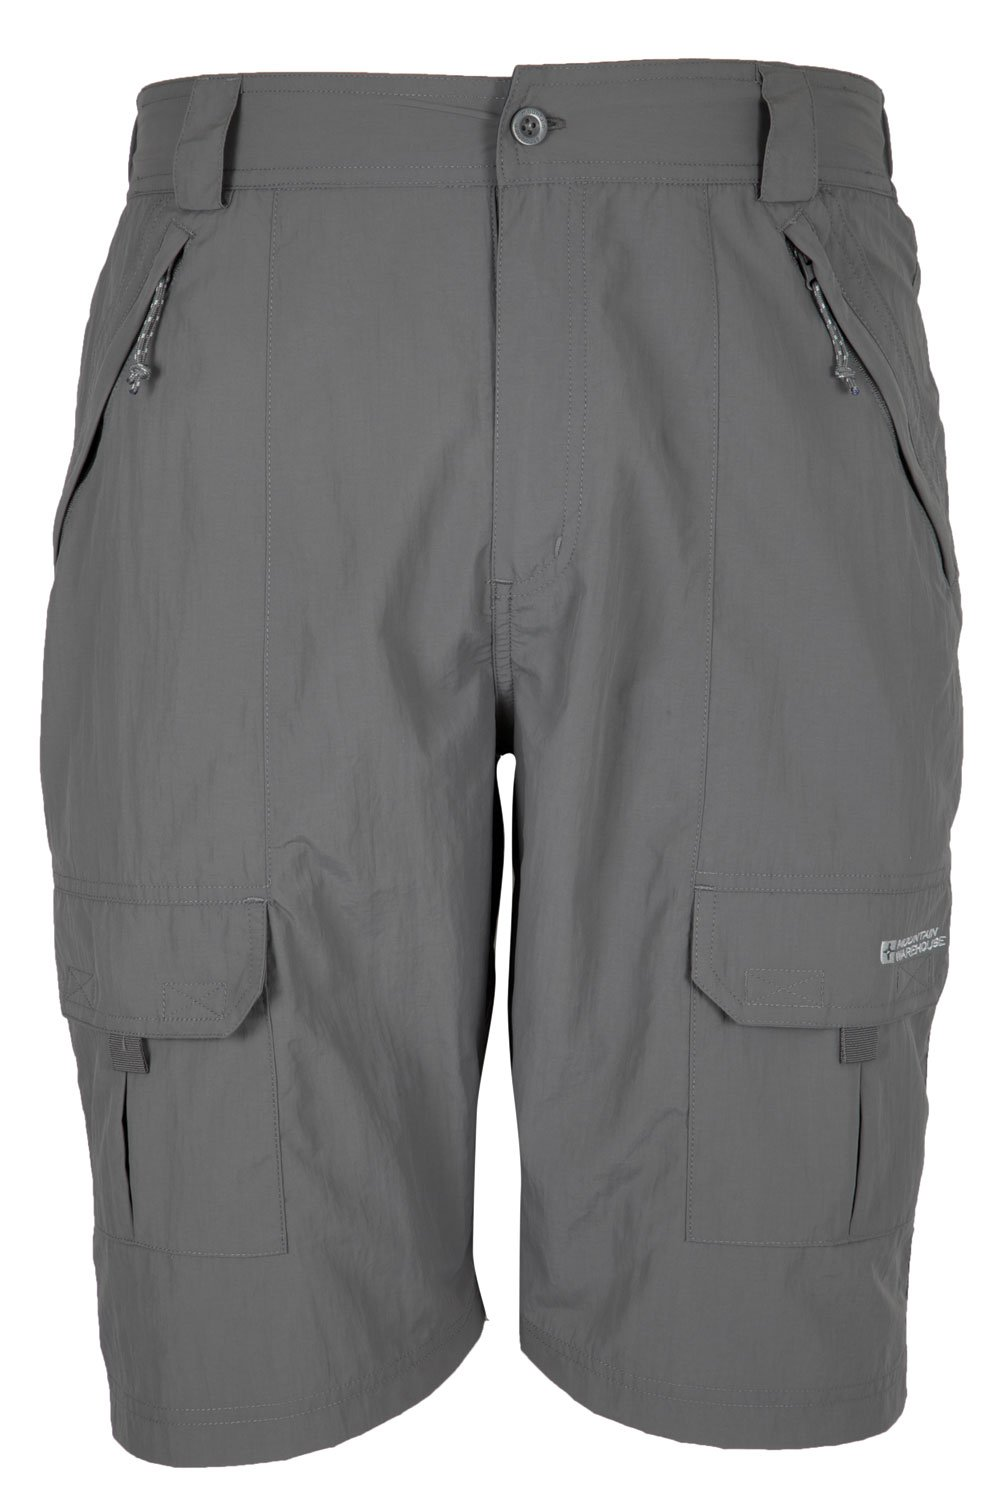 Mountain Warehouse Terrain Mens Lightweight Hiking Shorts inov 8 сумка all terrain kitbag black